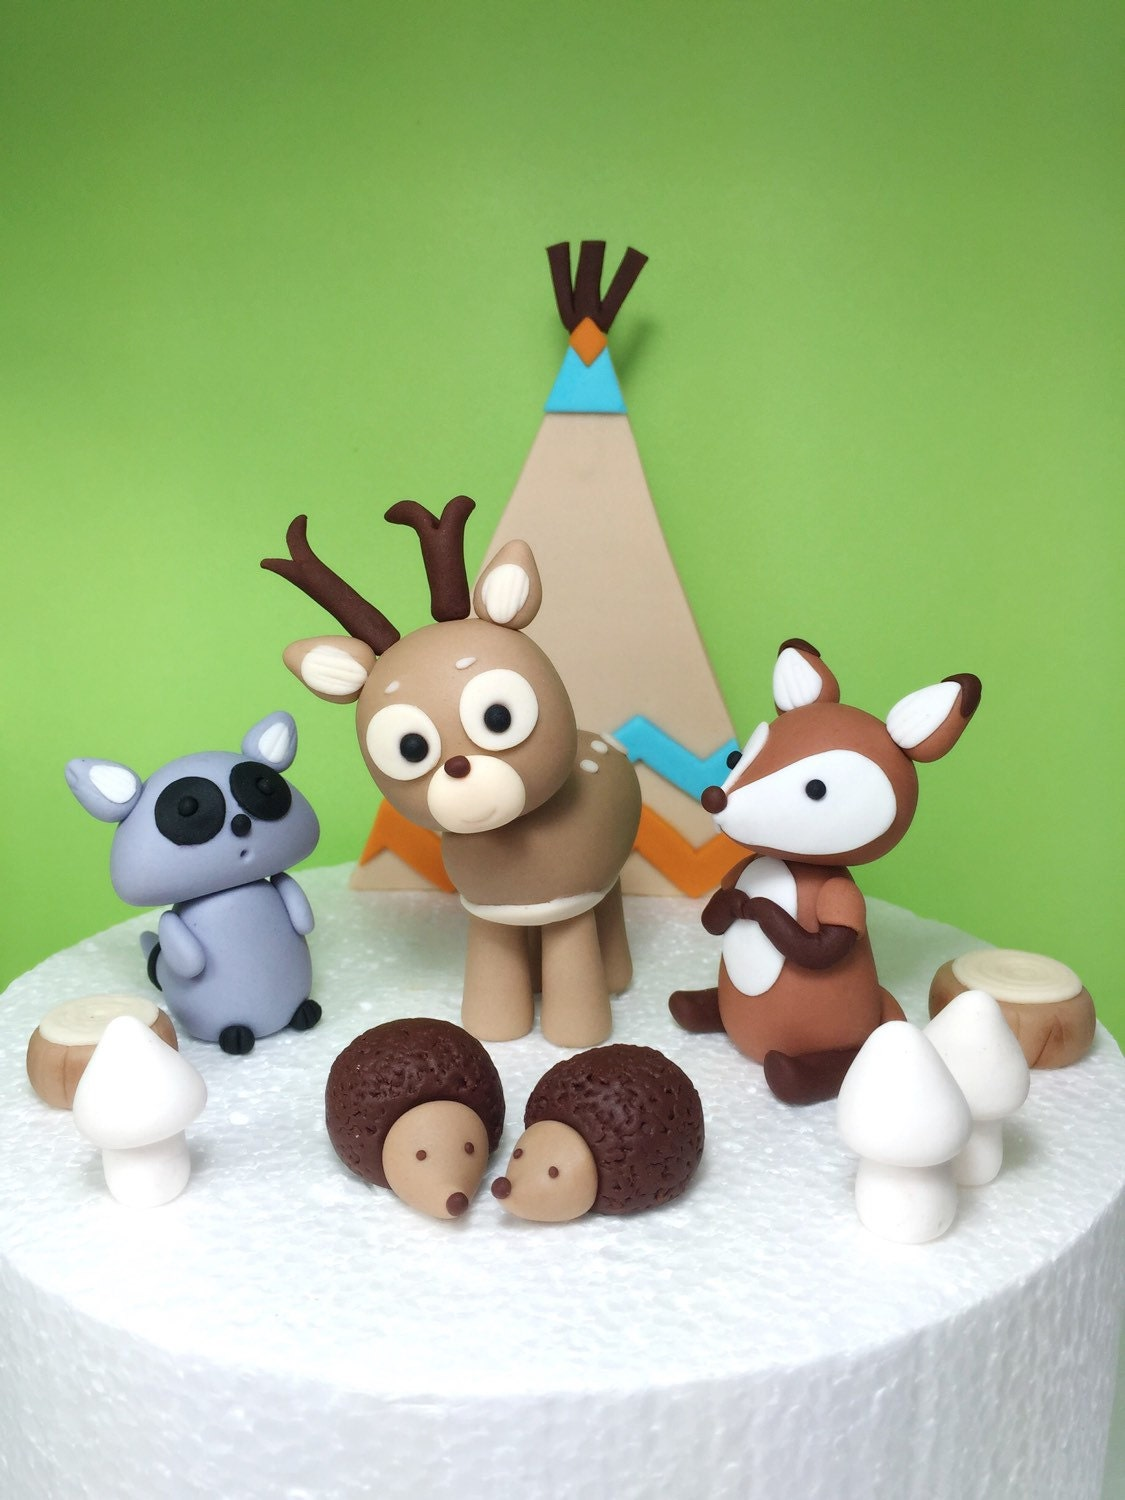 Cake Decoration Woodland Animals : Woodland animals baby shower / birthday fondant cake topper.